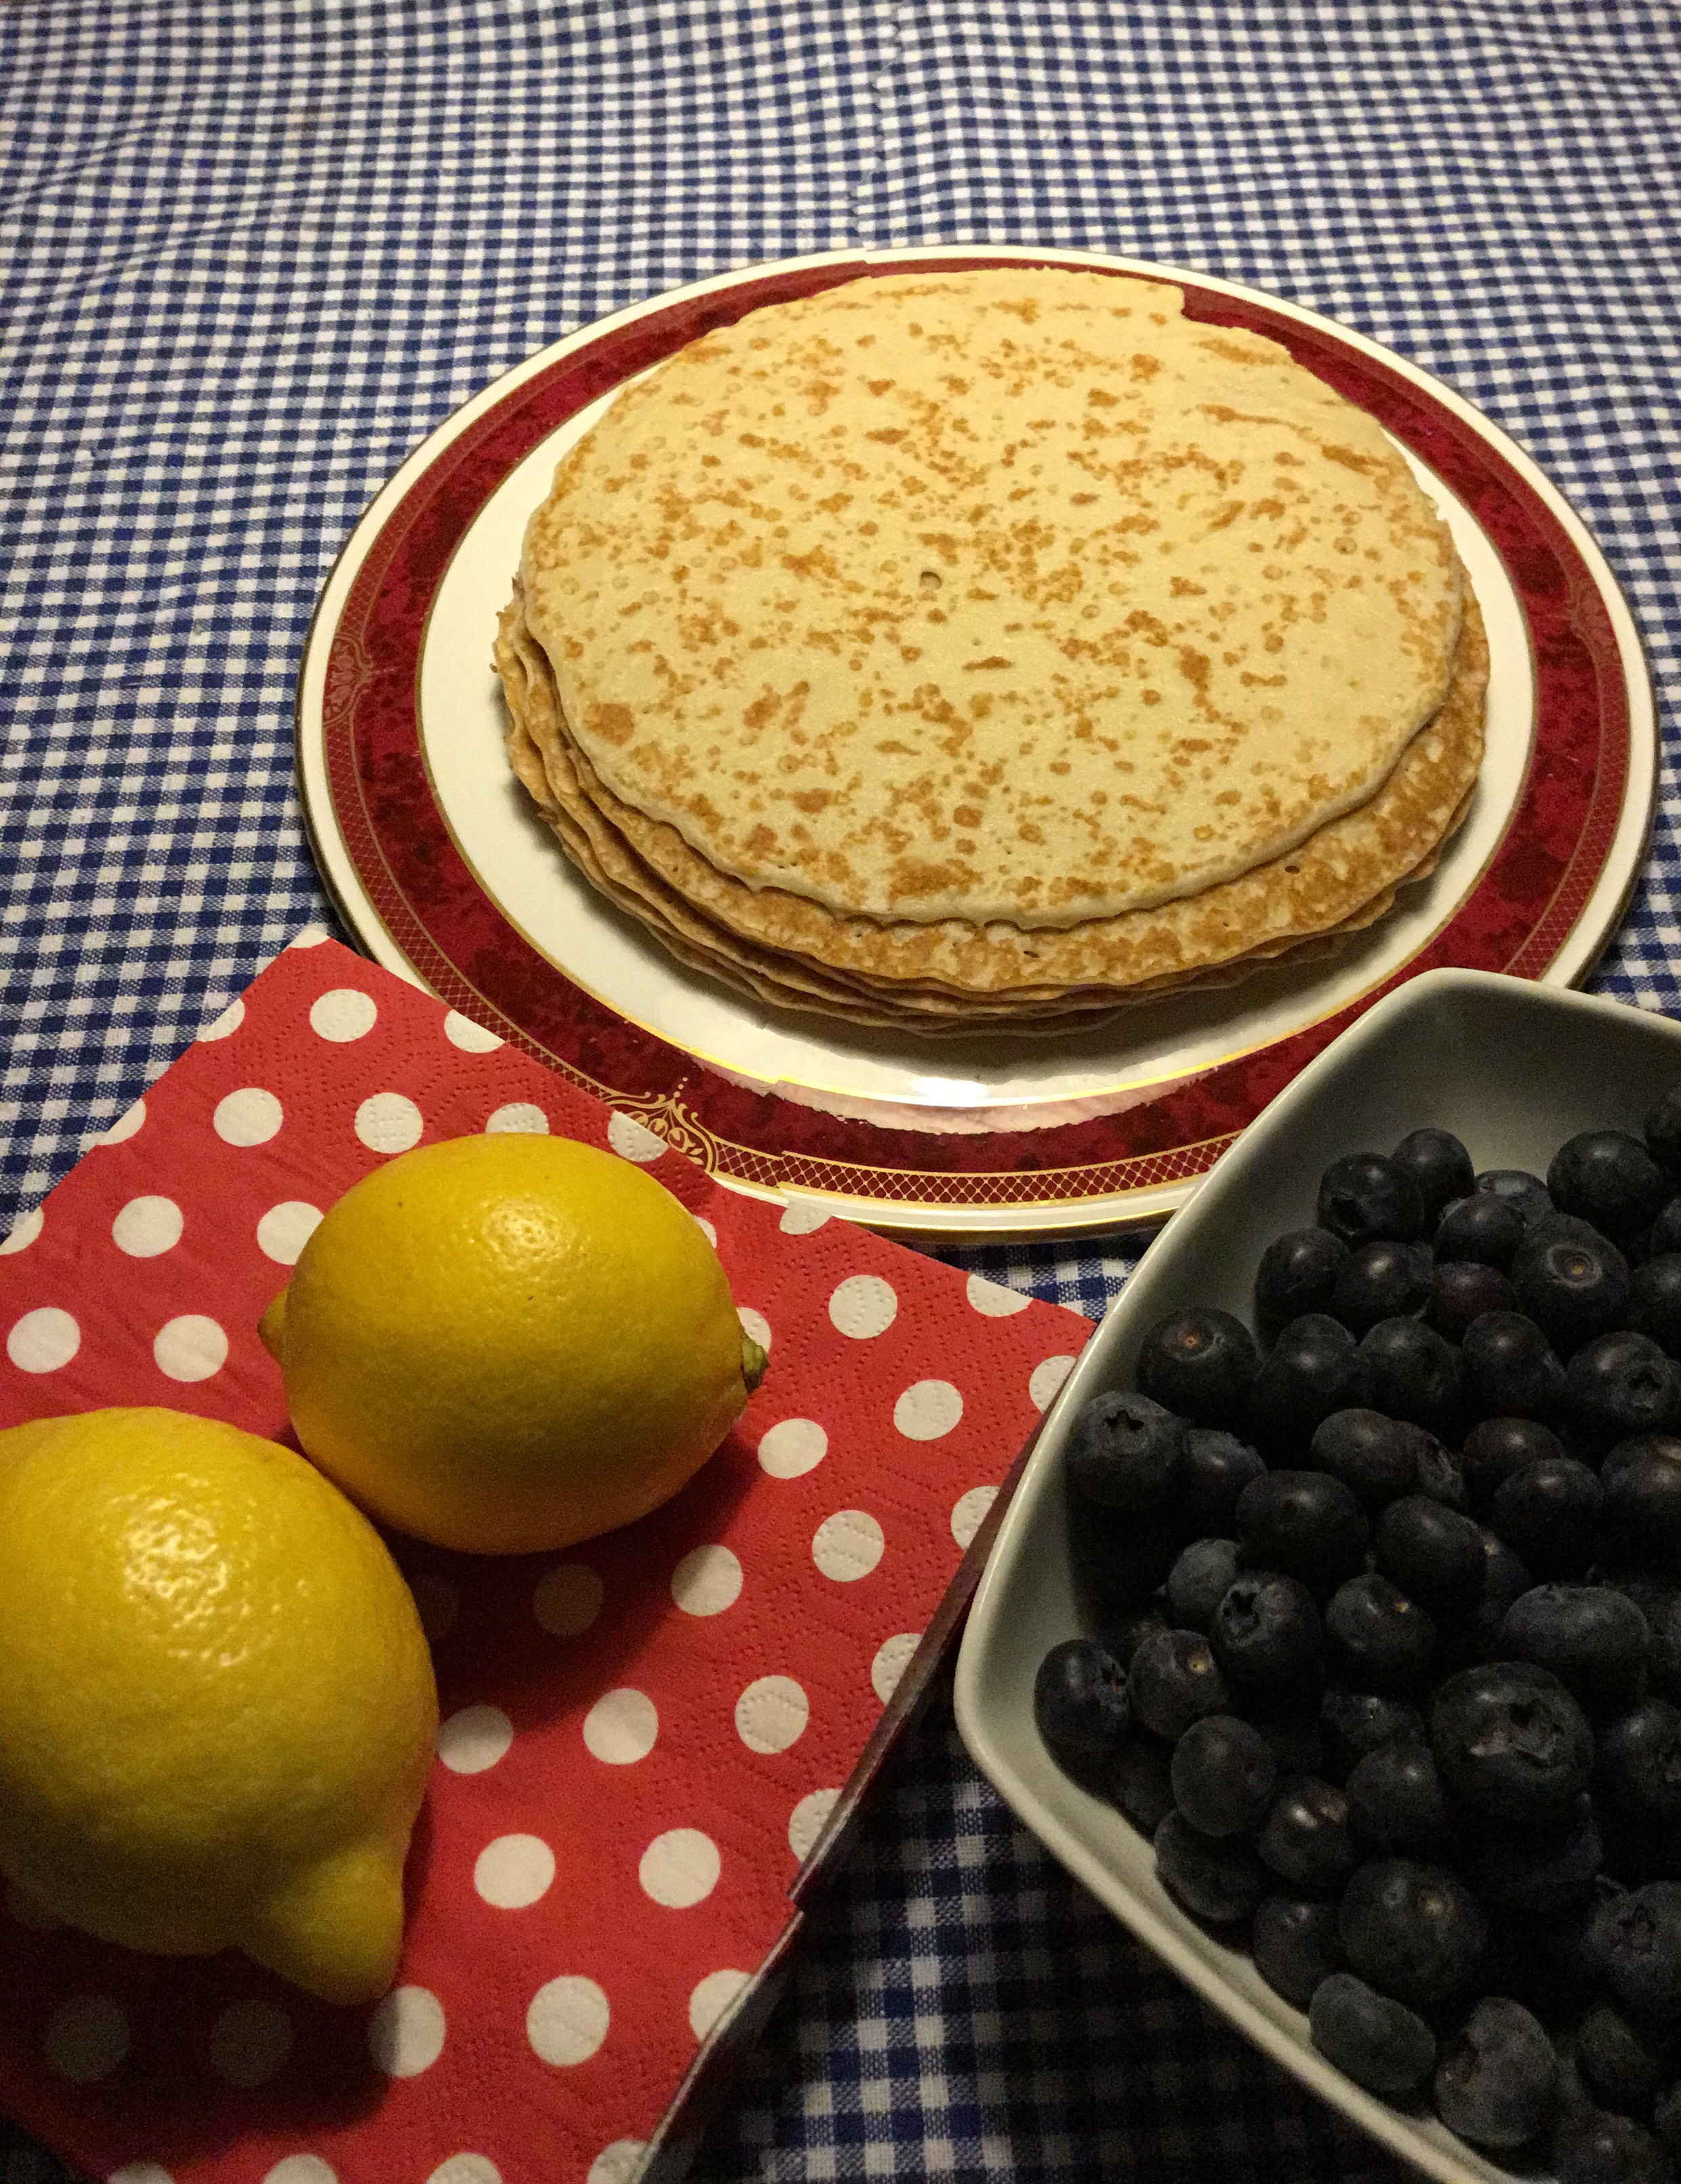 Headway Pancake Day; Pancakes with lemons and blueberries